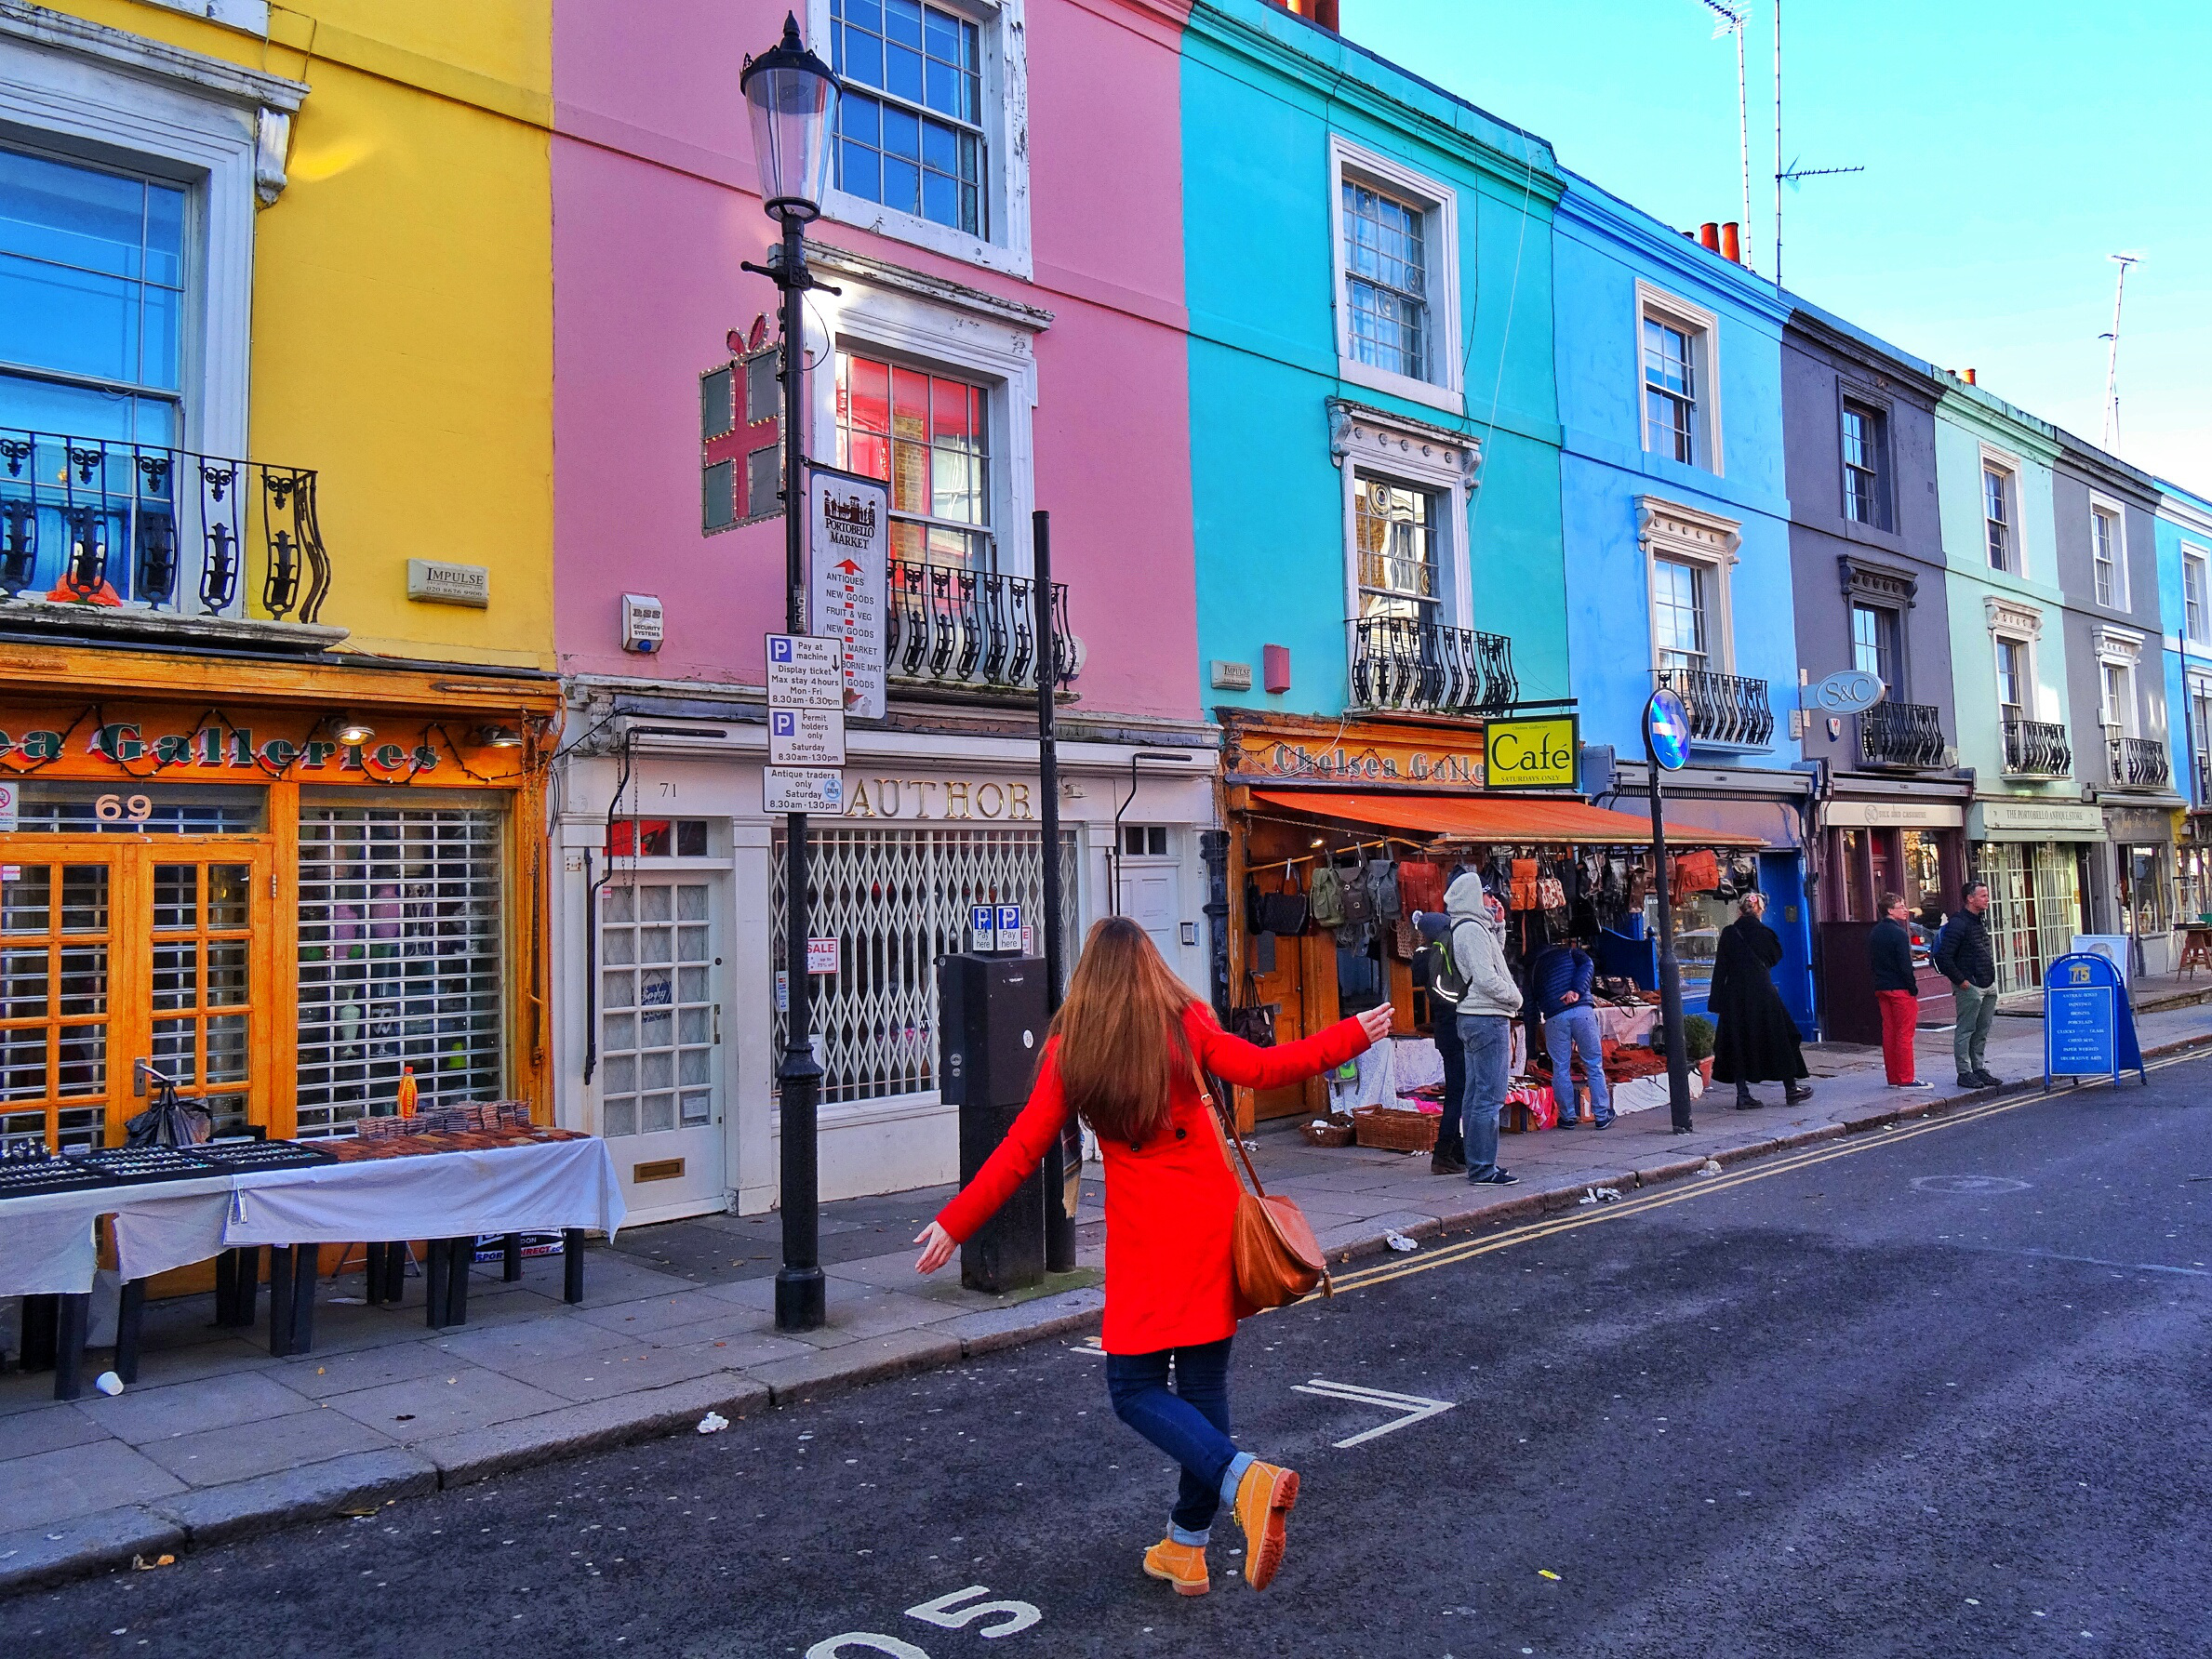 Portobello-Road-London